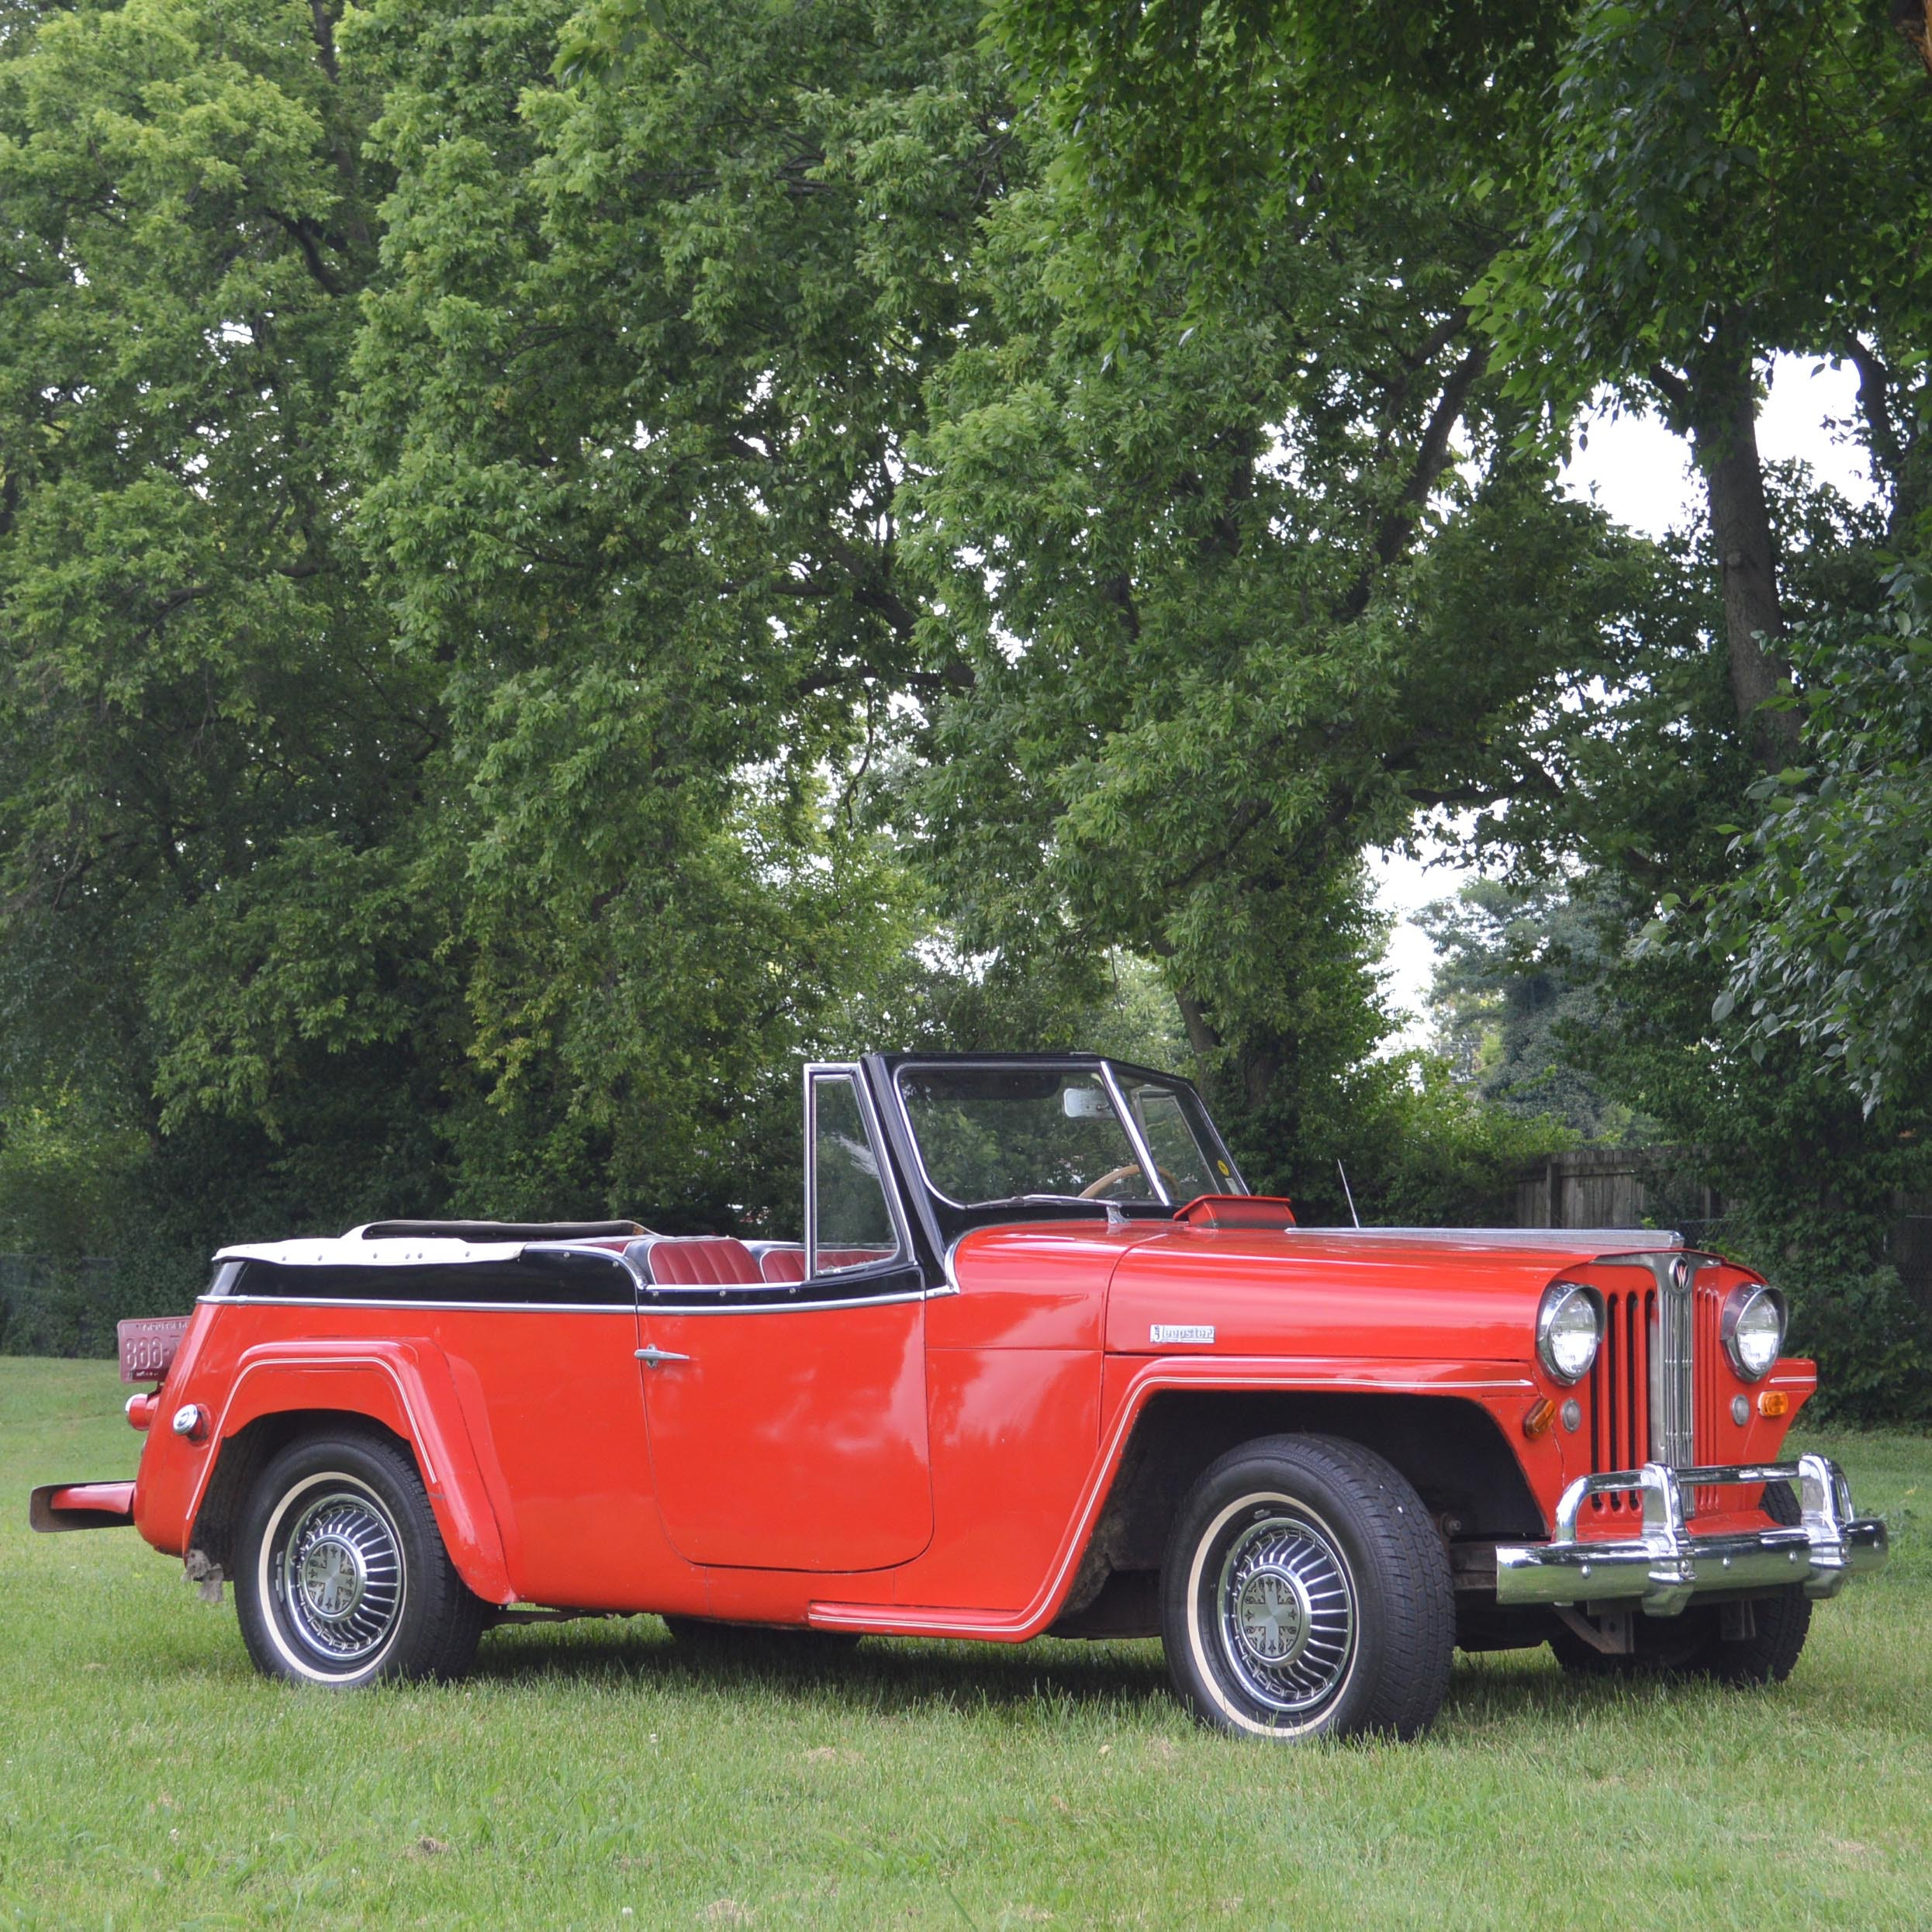 1949 Willys Overland Soft Top Jeepster